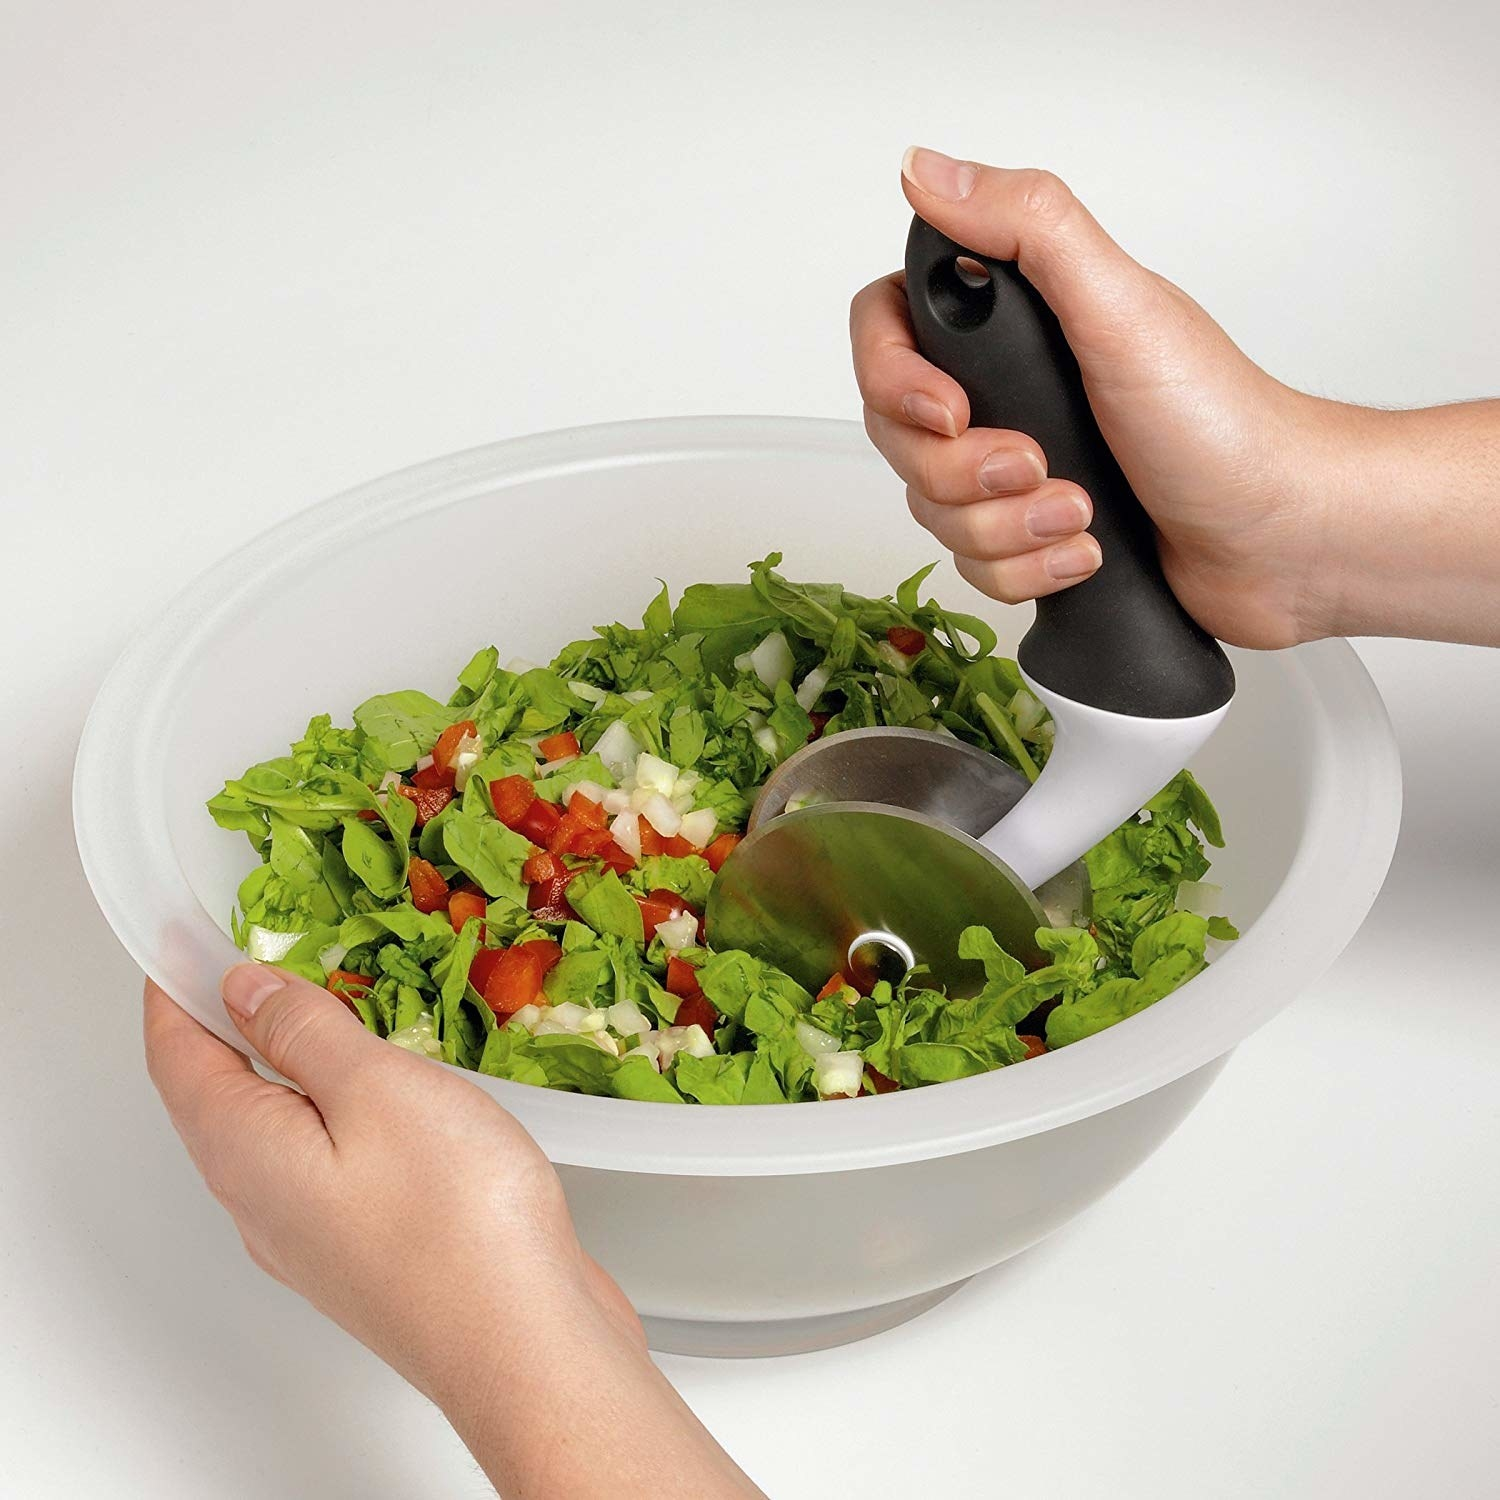 Hands rolling the double-pizza cutter-esque chopper through a bowl of greens and veggies